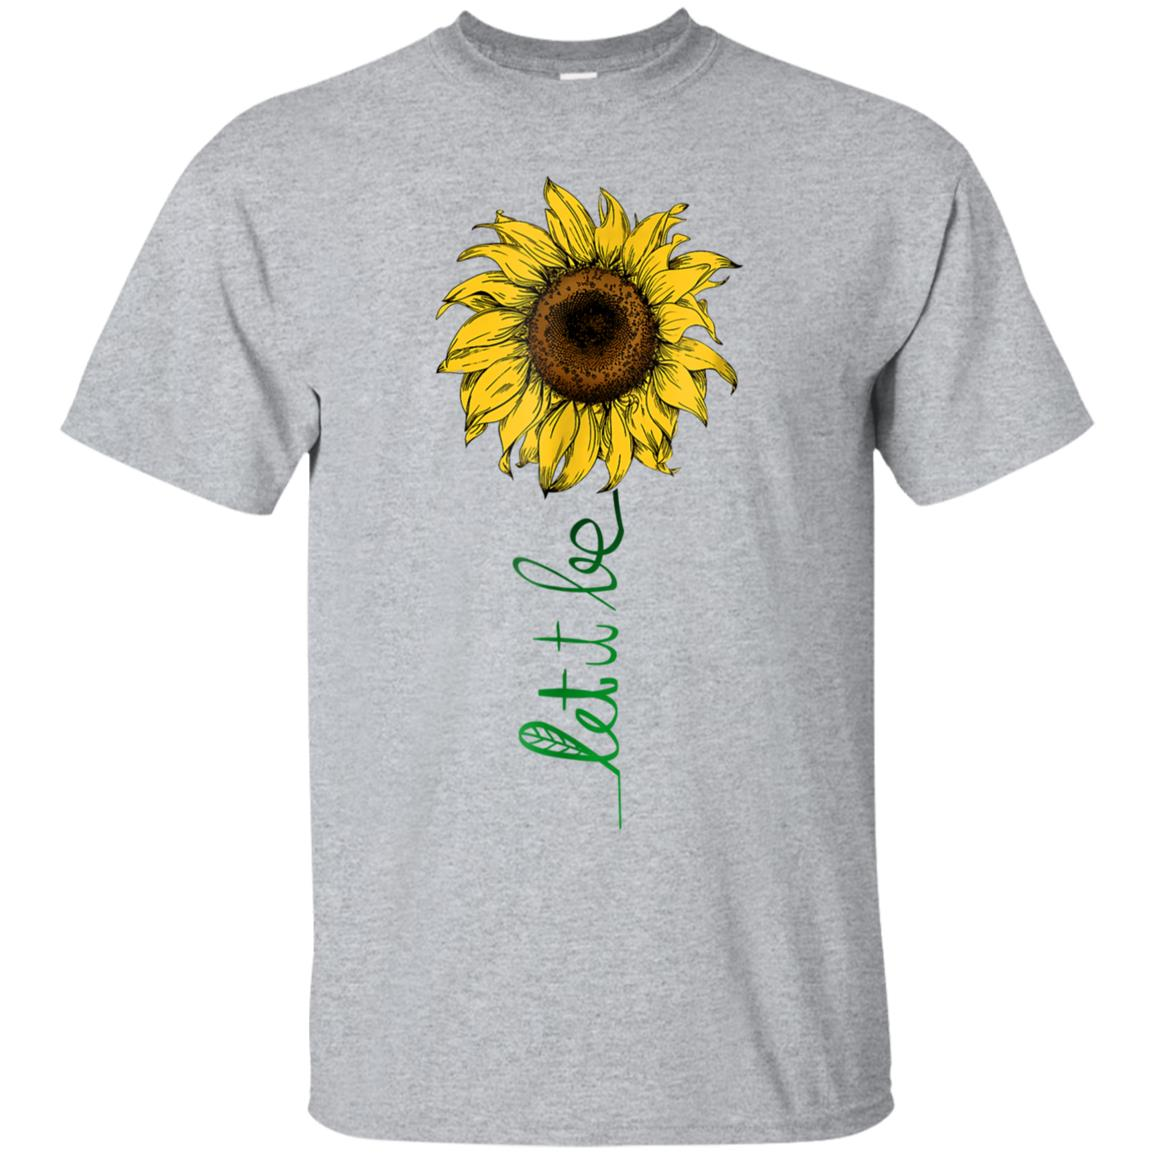 Let It Be Sunflower Hippie Gypsy Spirit Lover Vintage Tee 99promocode